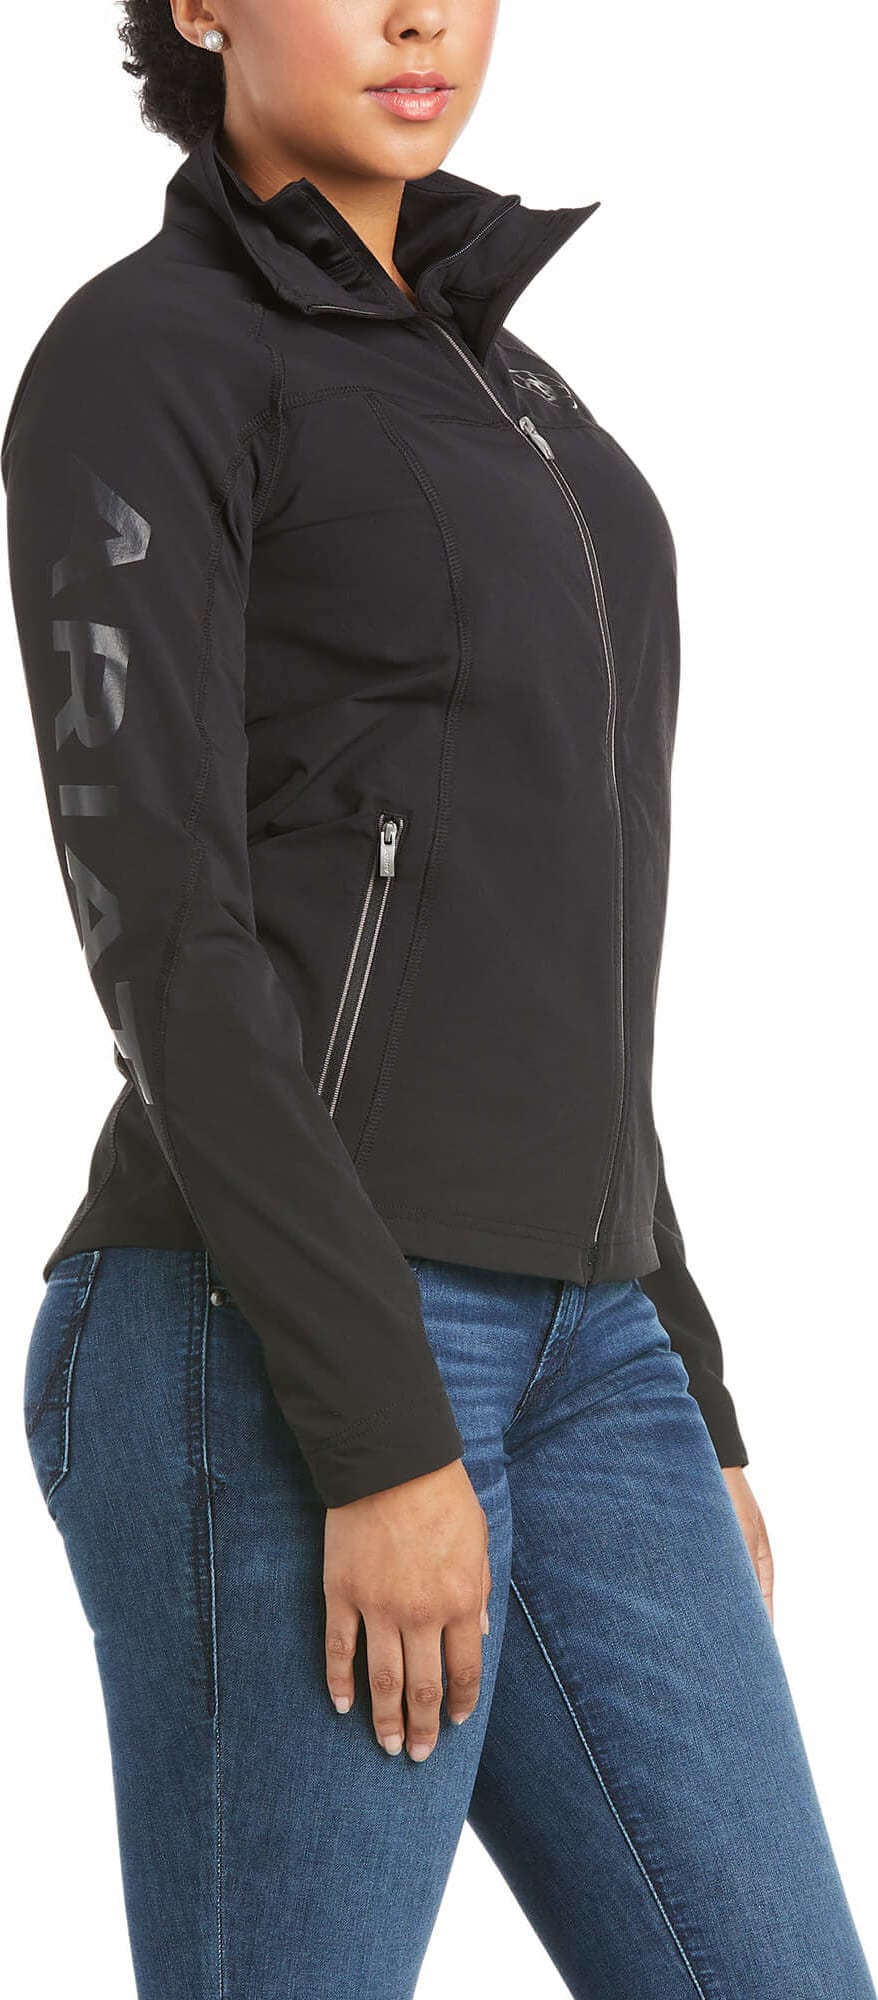 Ariat Agile Softshell Water Resistent Jacket